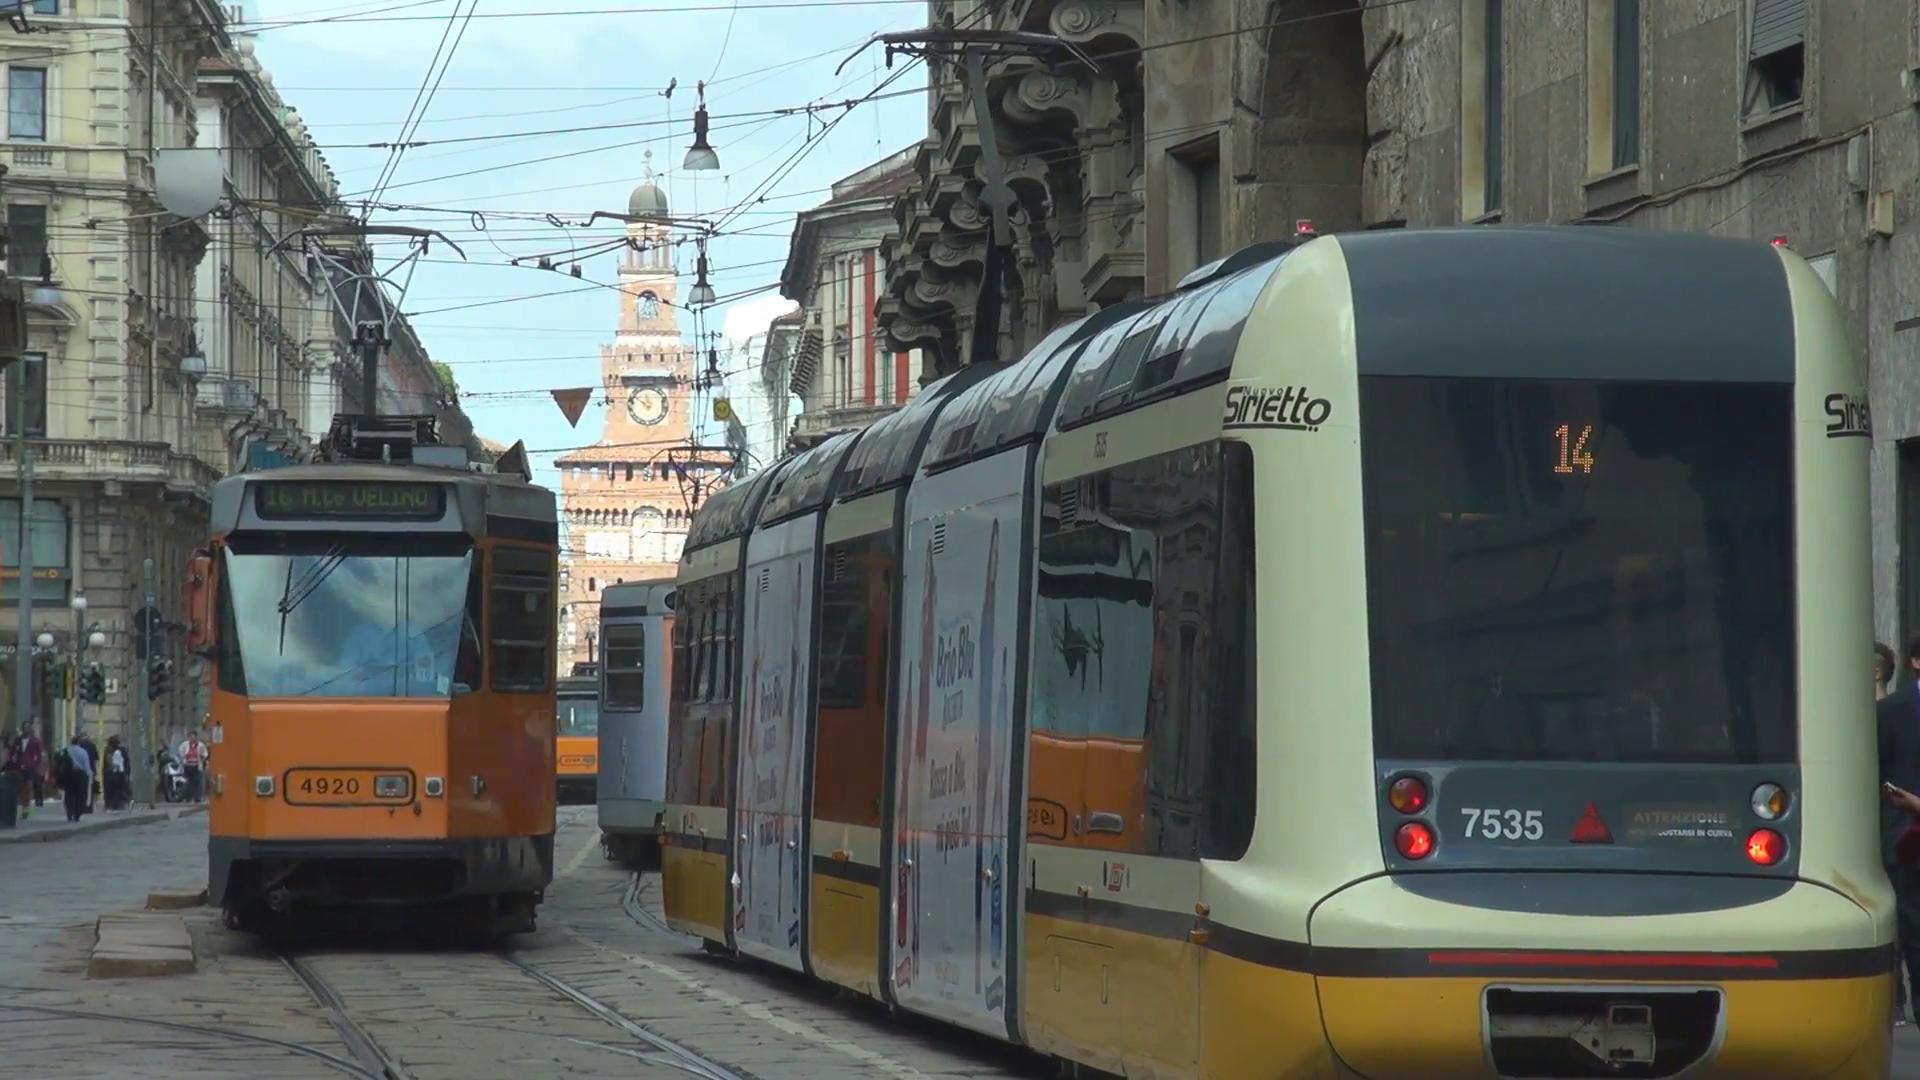 Modern tram traffic old town crowded Milan city people commute ...